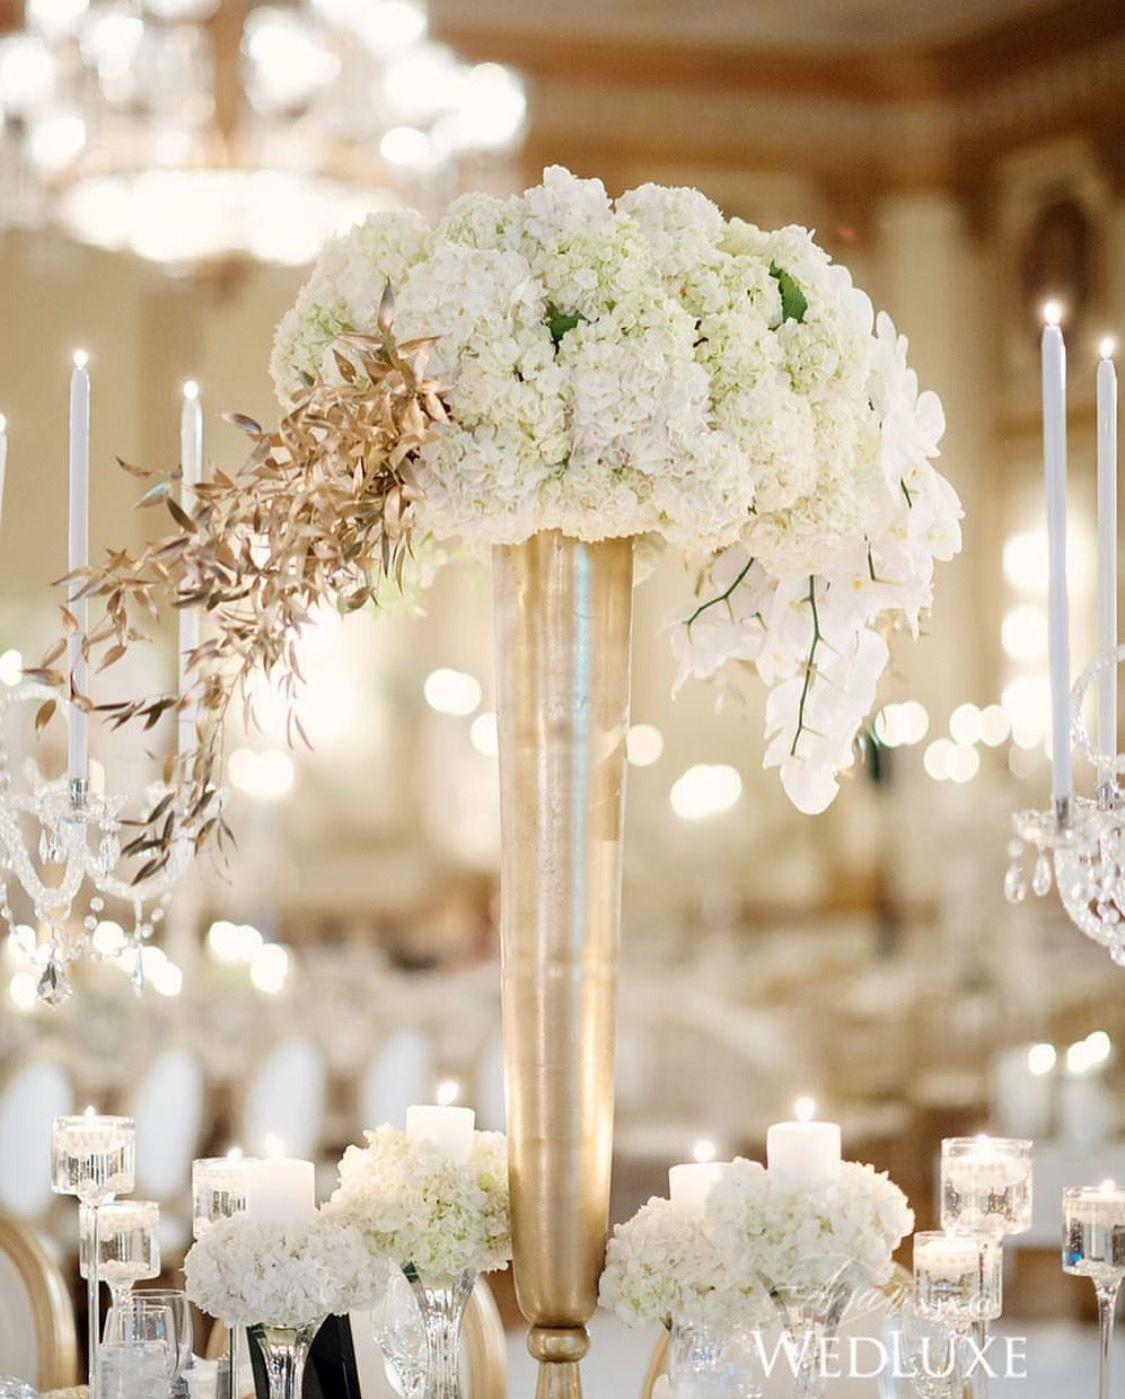 White and gold floral centrepiece   Floral Designs   Pinterest ...